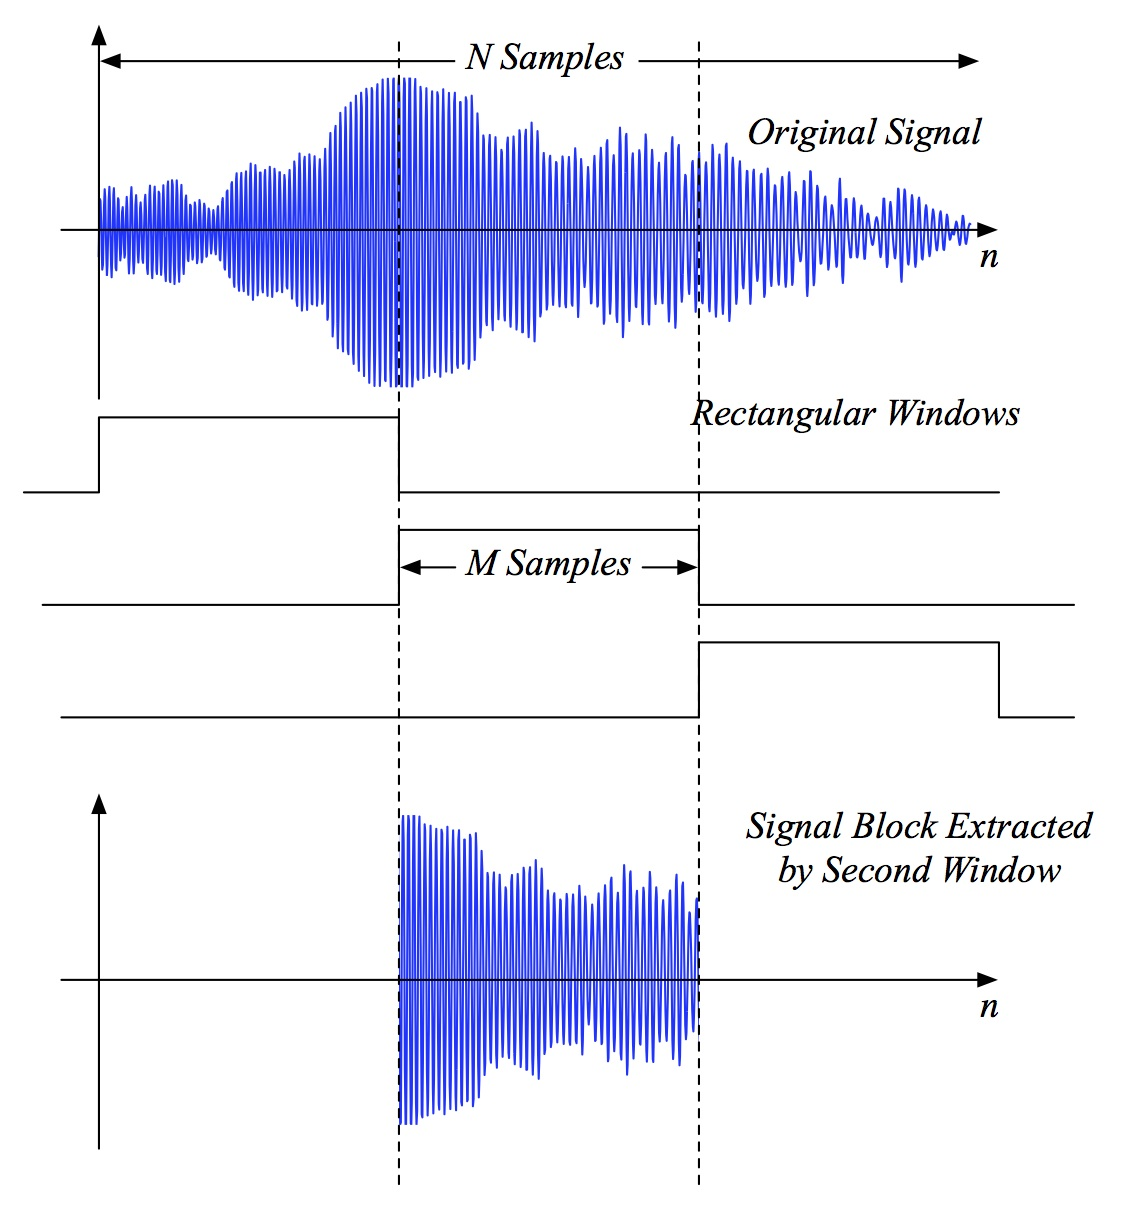 lab3-Part_I_Time-Frequency-Spectrogram